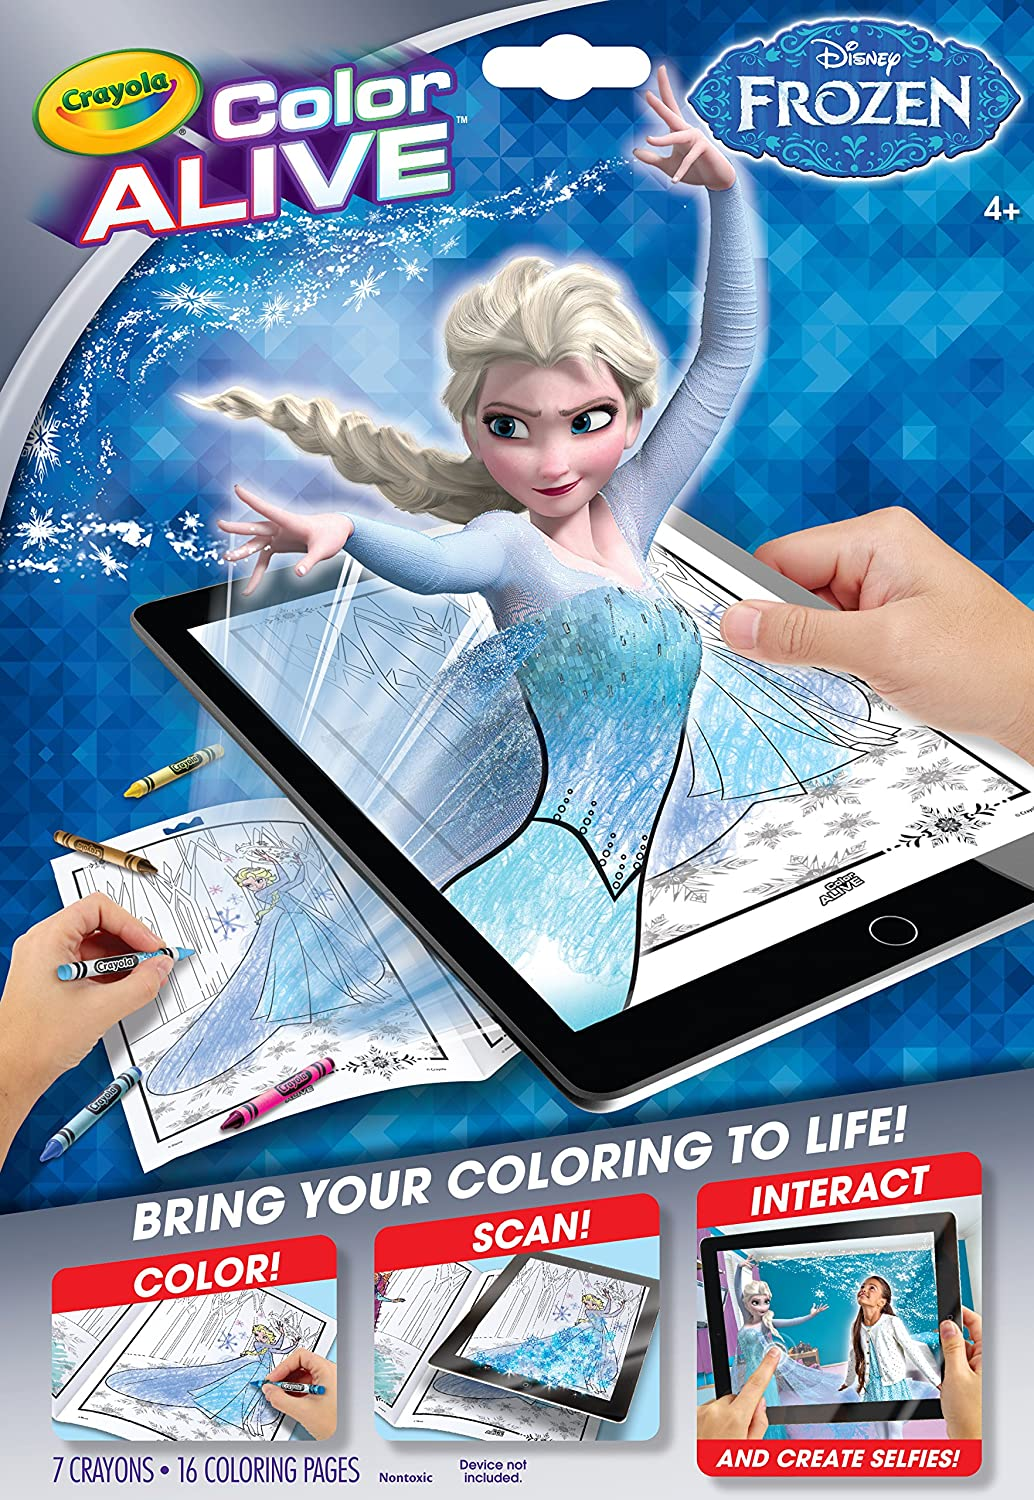 Amazon Crayola Frozen Color Alive Action Coloring Pages Toys Games